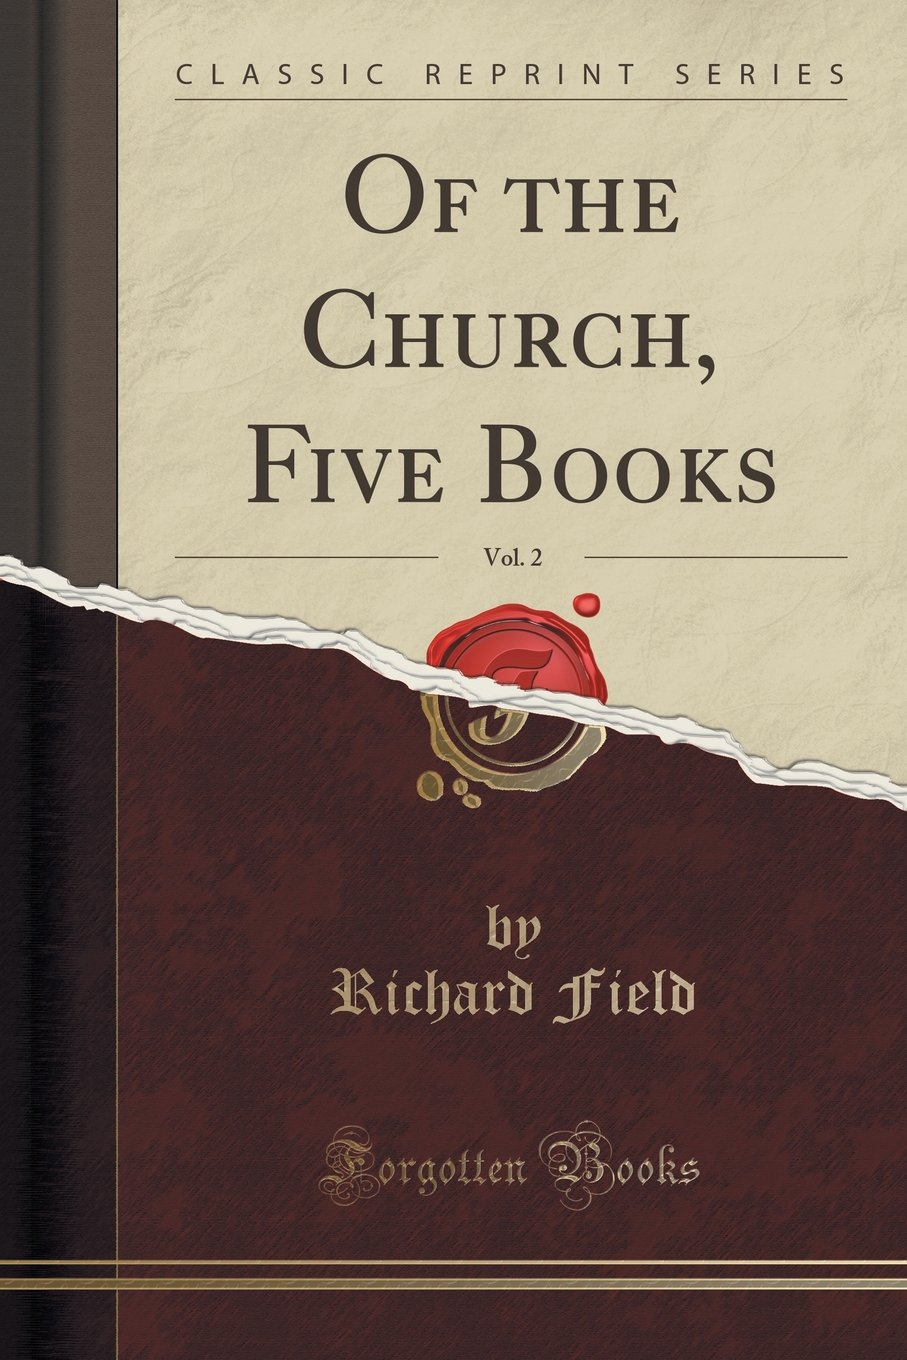 Field, Richard, Of the Church, vol. 2 (5 bks in 4 vols)